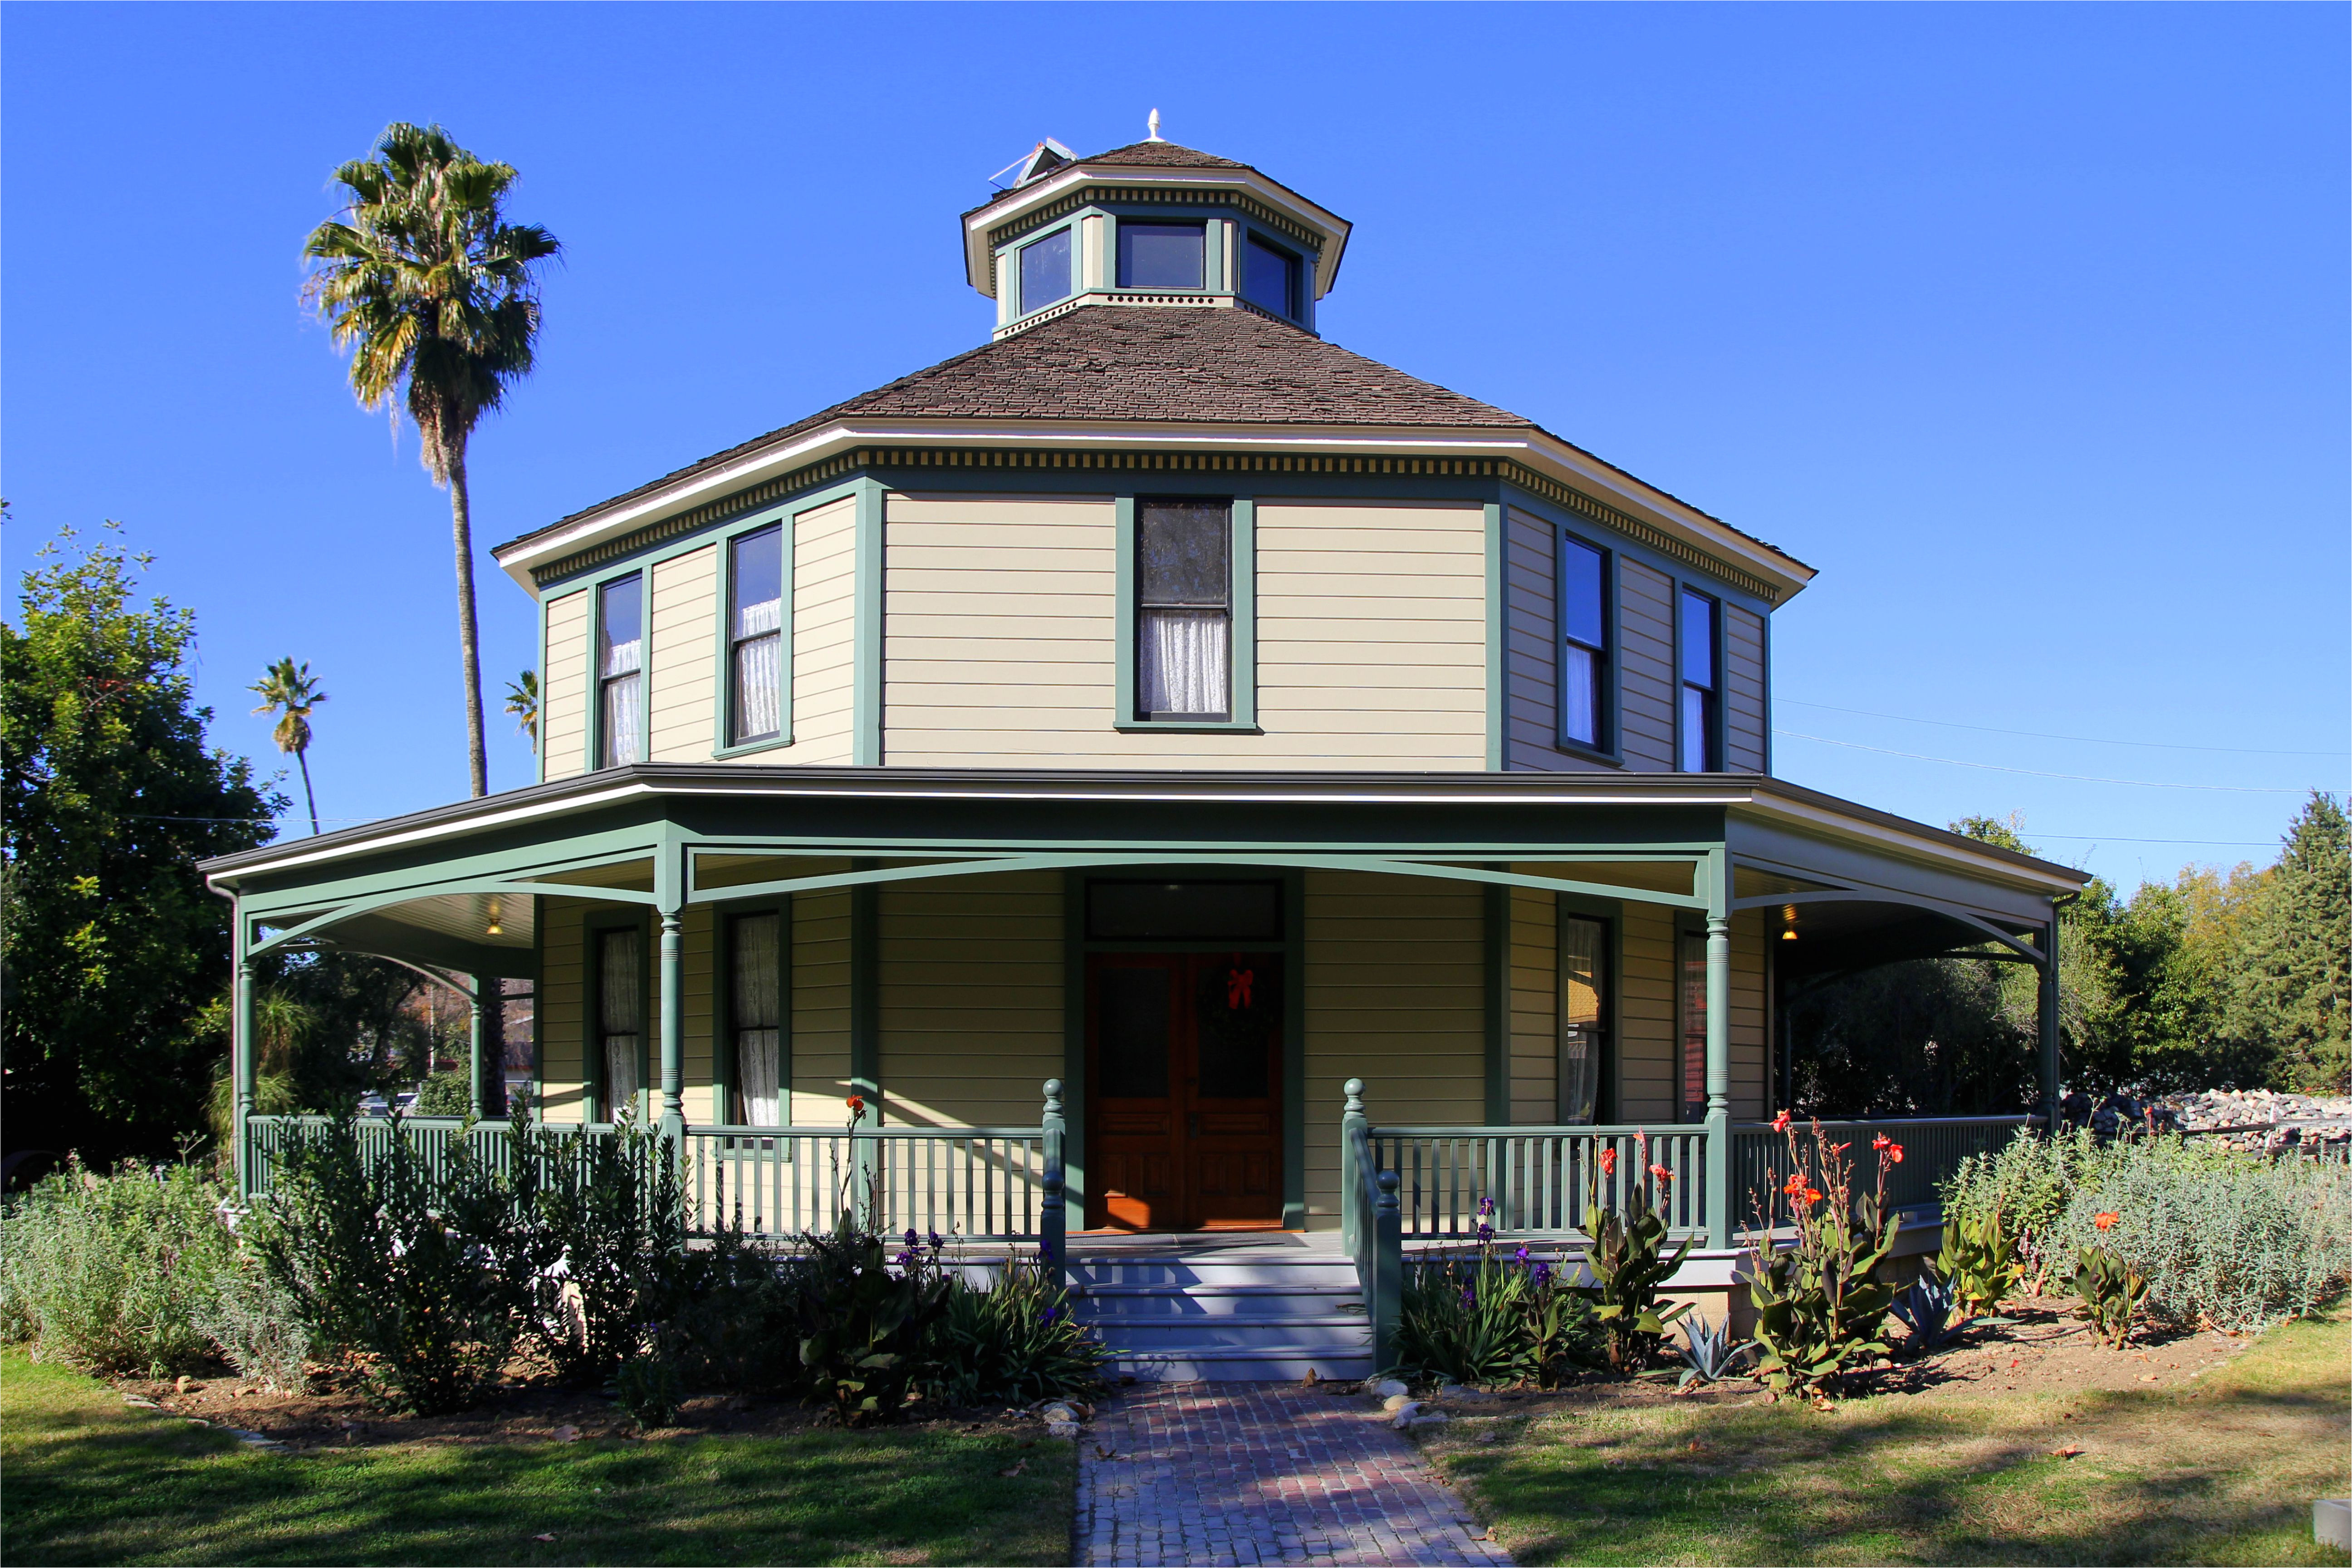 the 1893 longfellow hastings octagon house in los angeles california